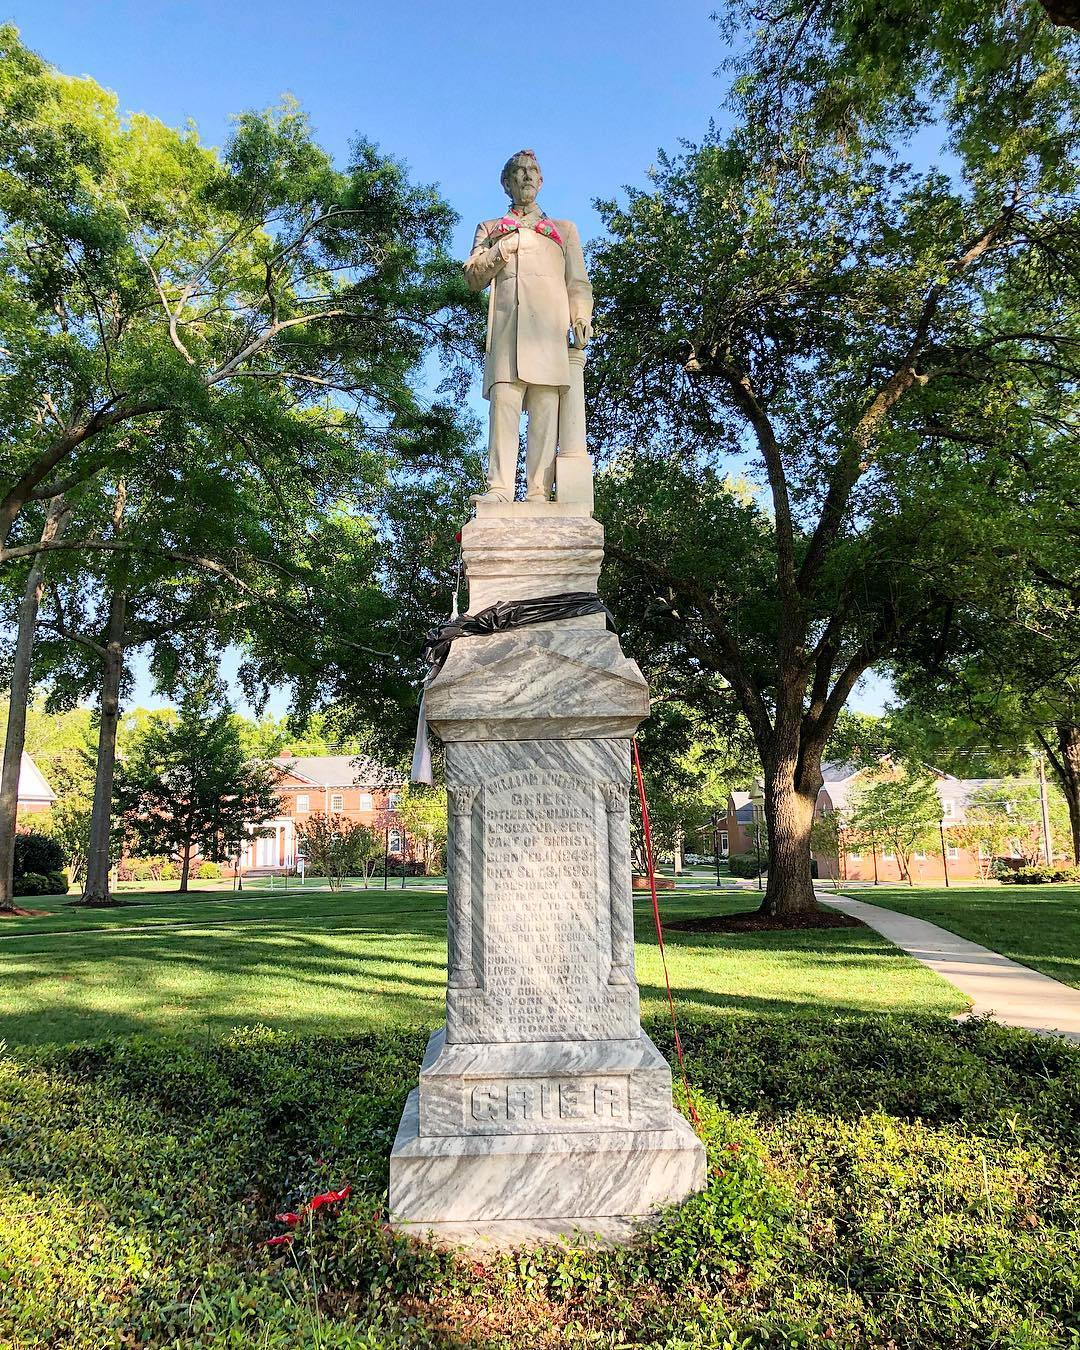 Monument to William Moffatt Grier (1843-1899), president of Erskine College from 1871-1899. The monument was erected in 1904